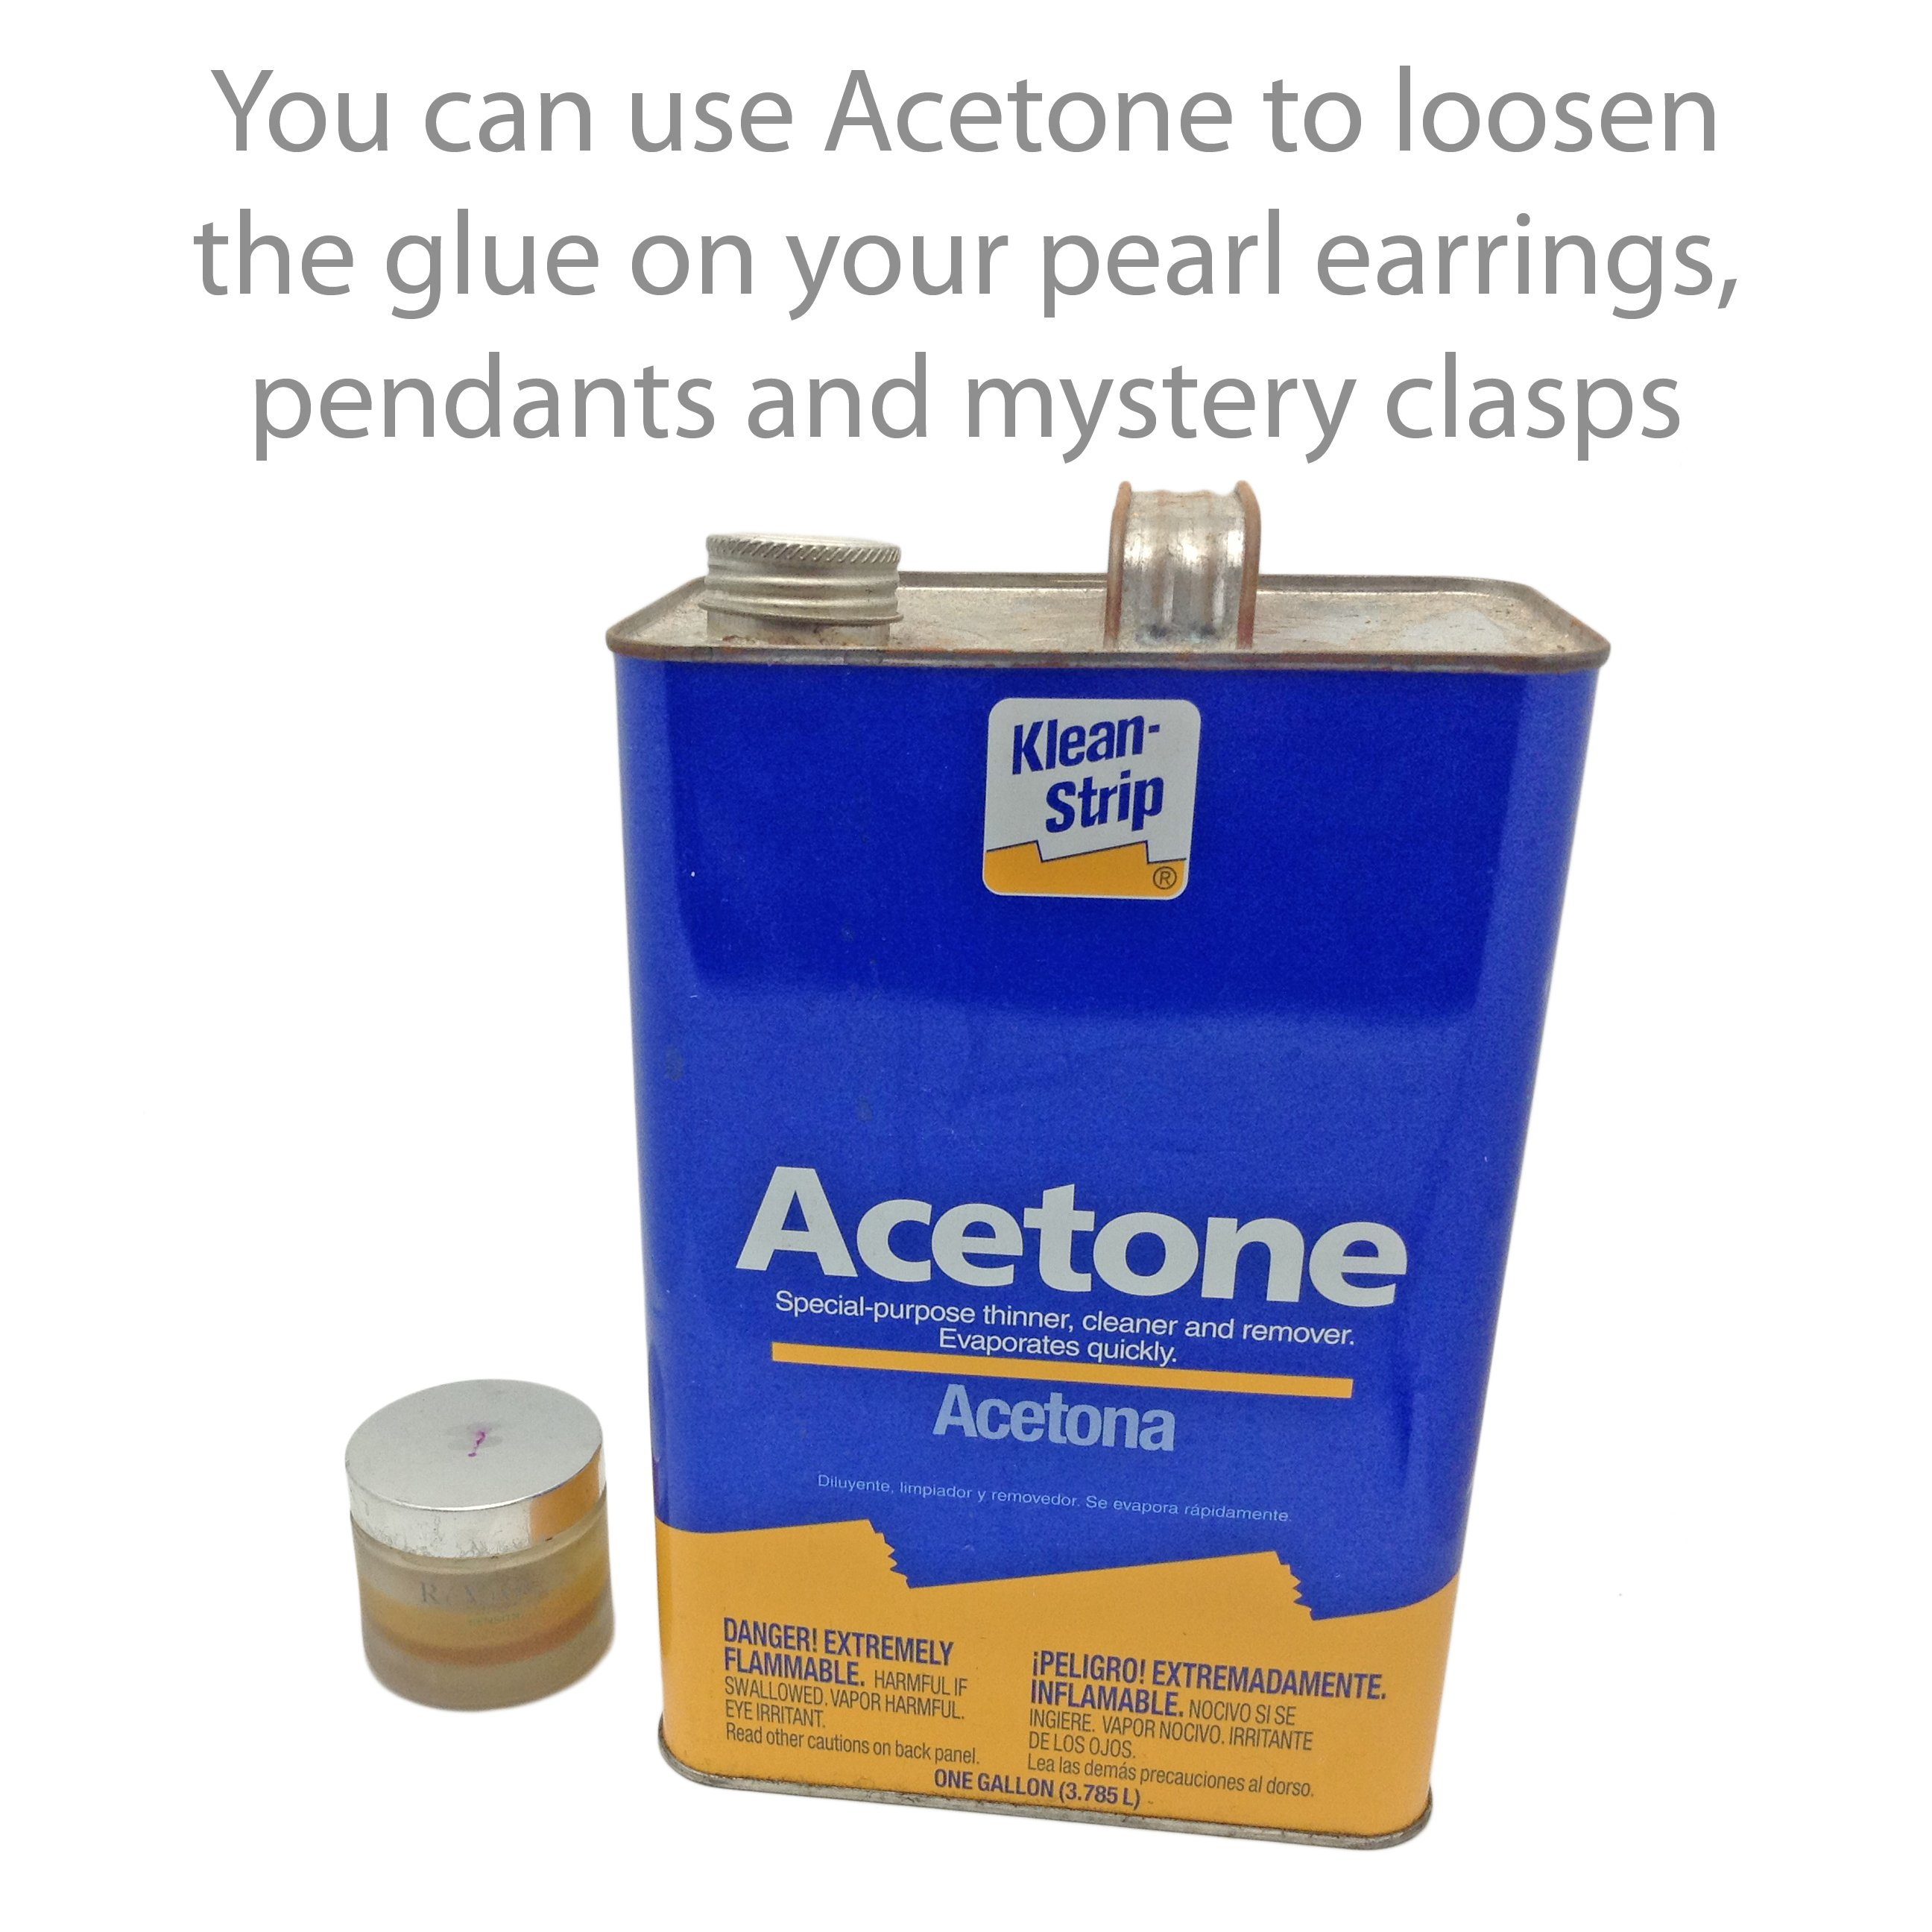 Acetone for Removing Glue from Pearls